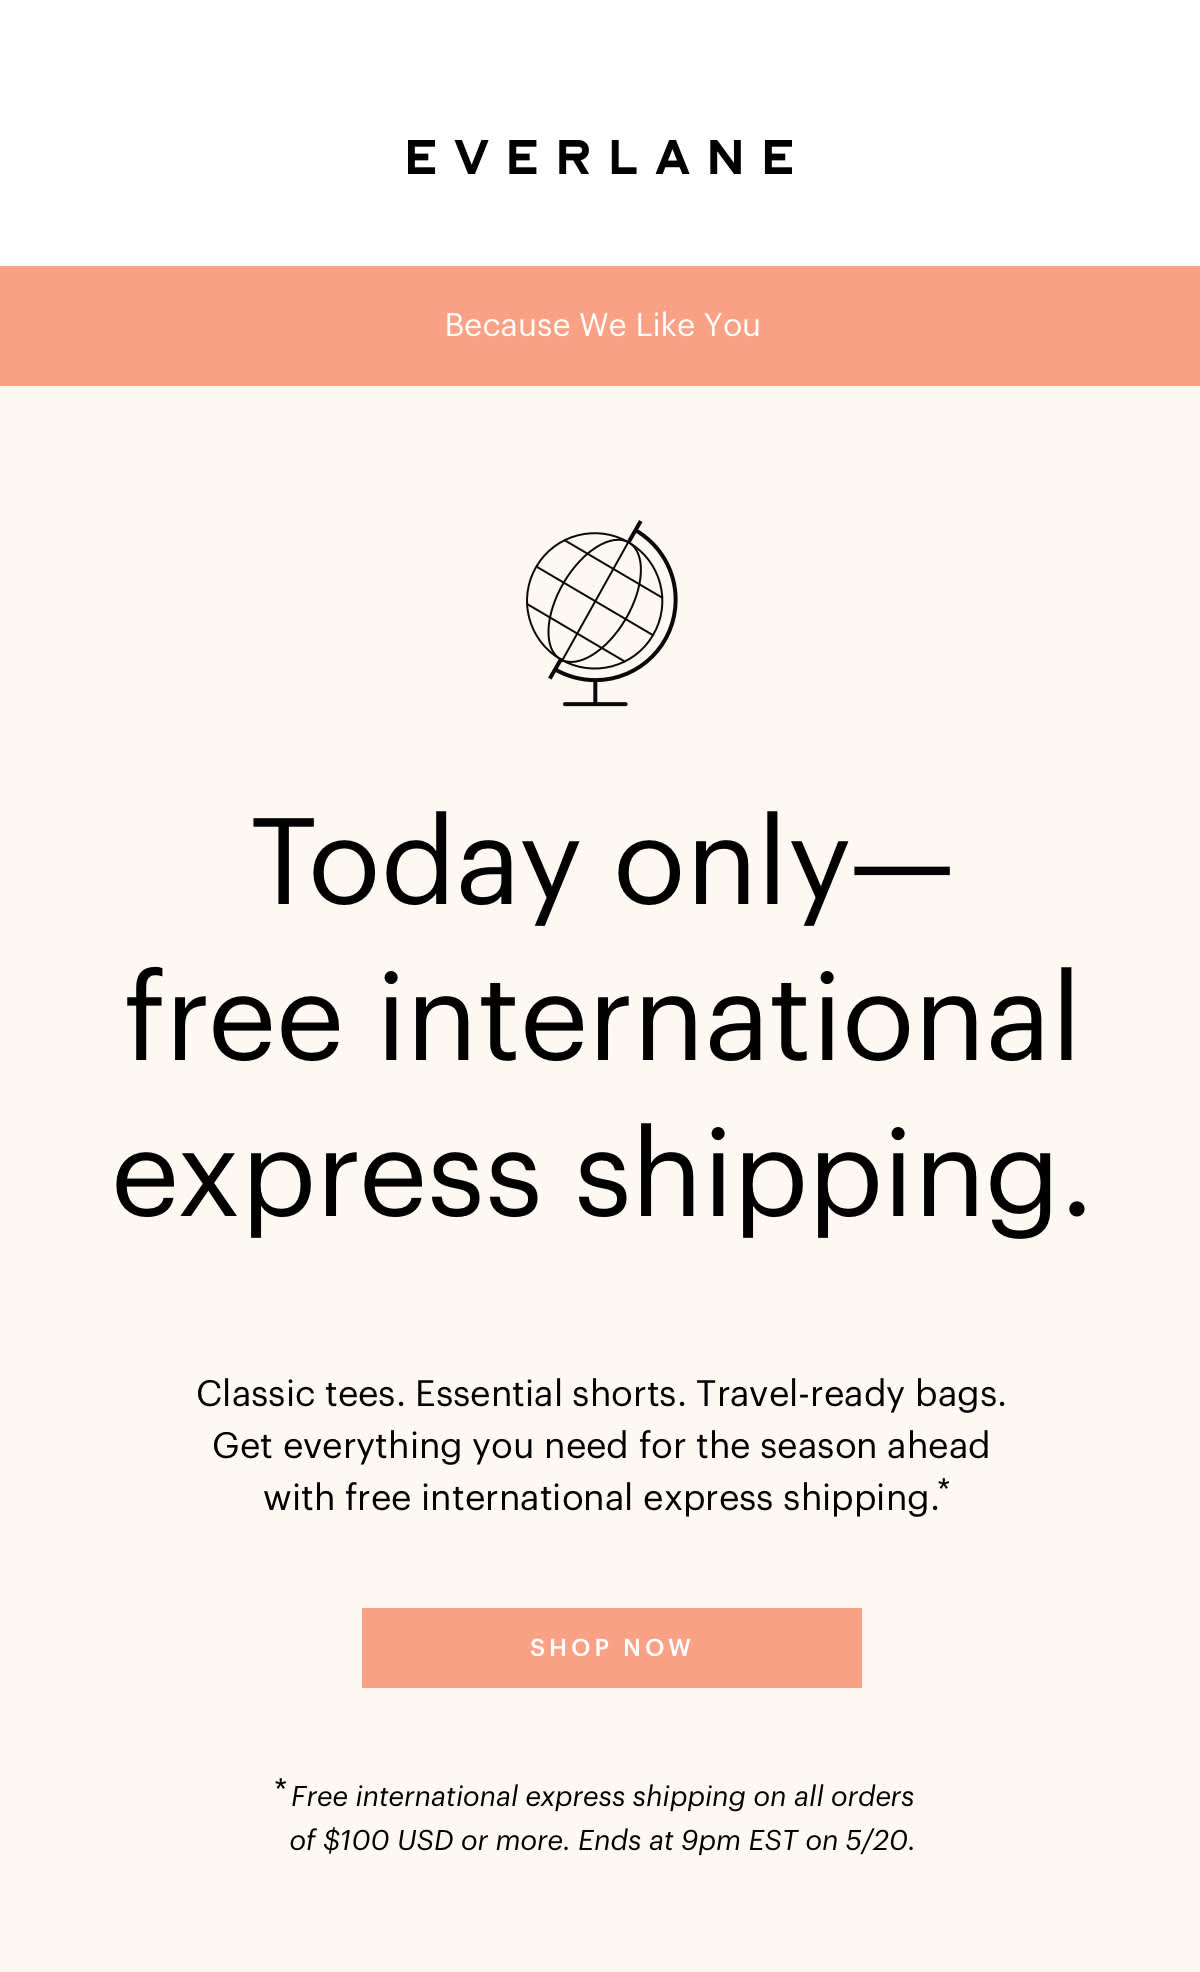 Because We Like You: Today only- free international express shipping. SHOP NOW